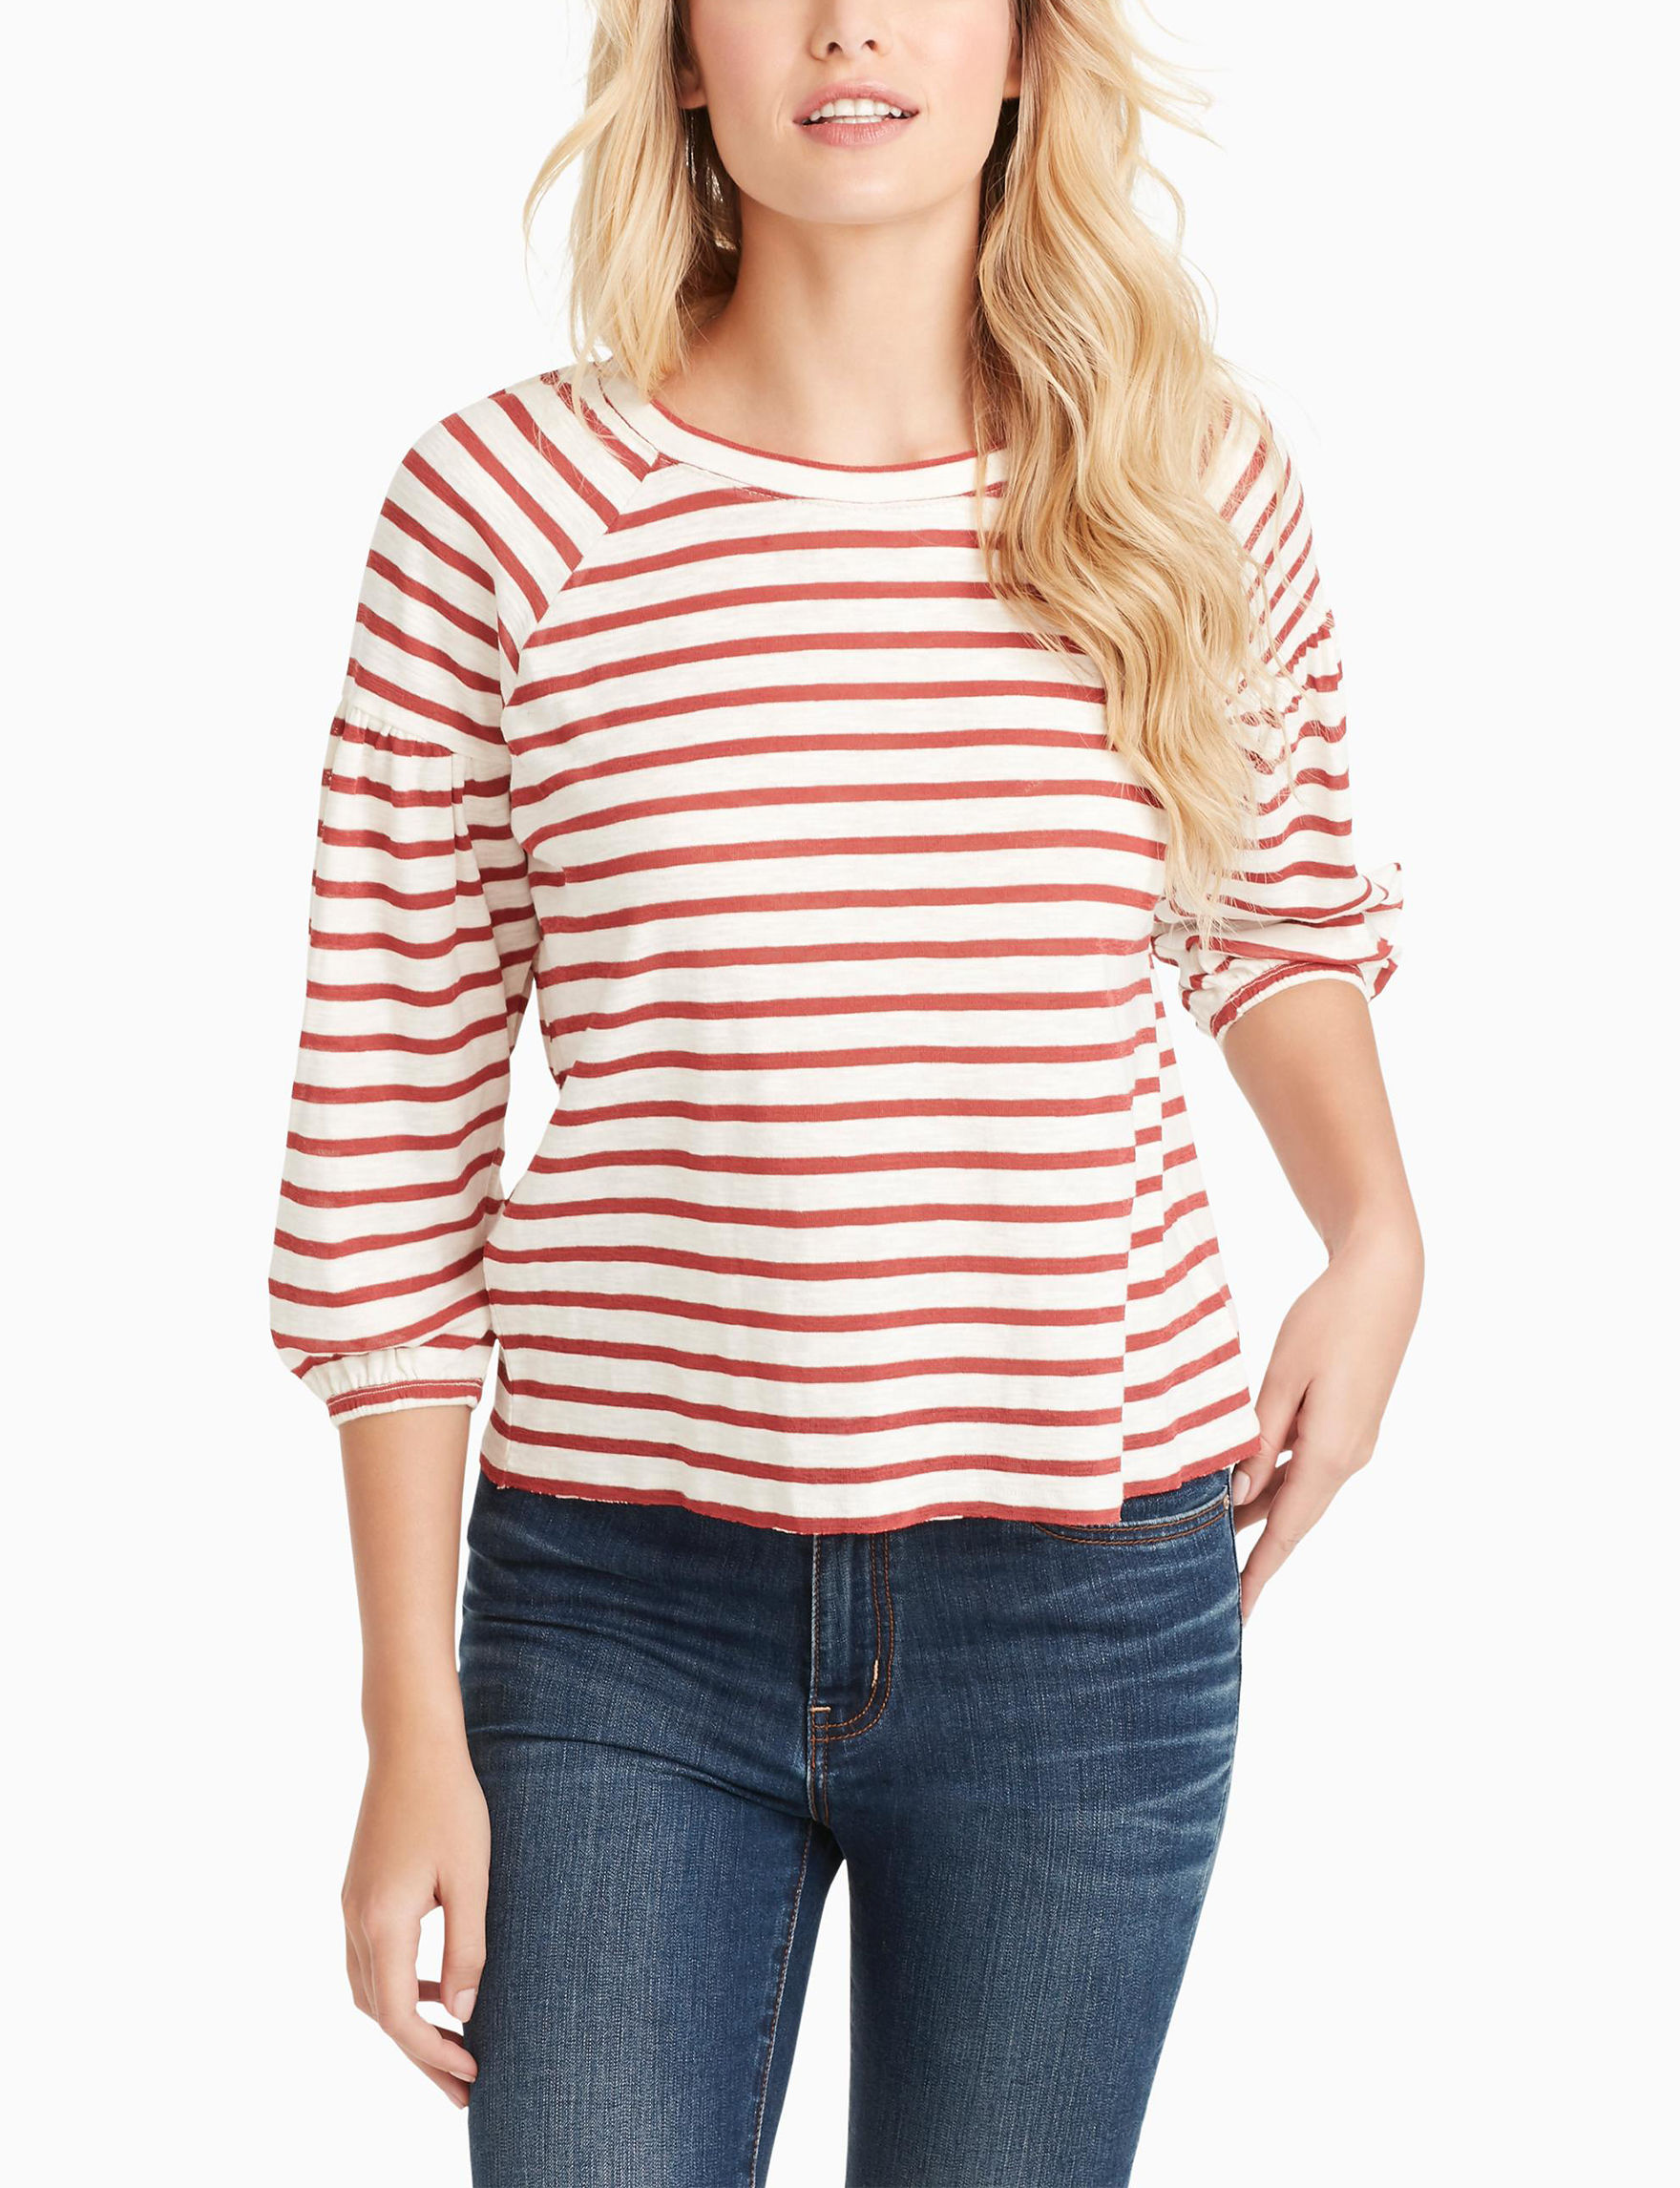 Jessica Simpson Off White / Red Shirts & Blouses